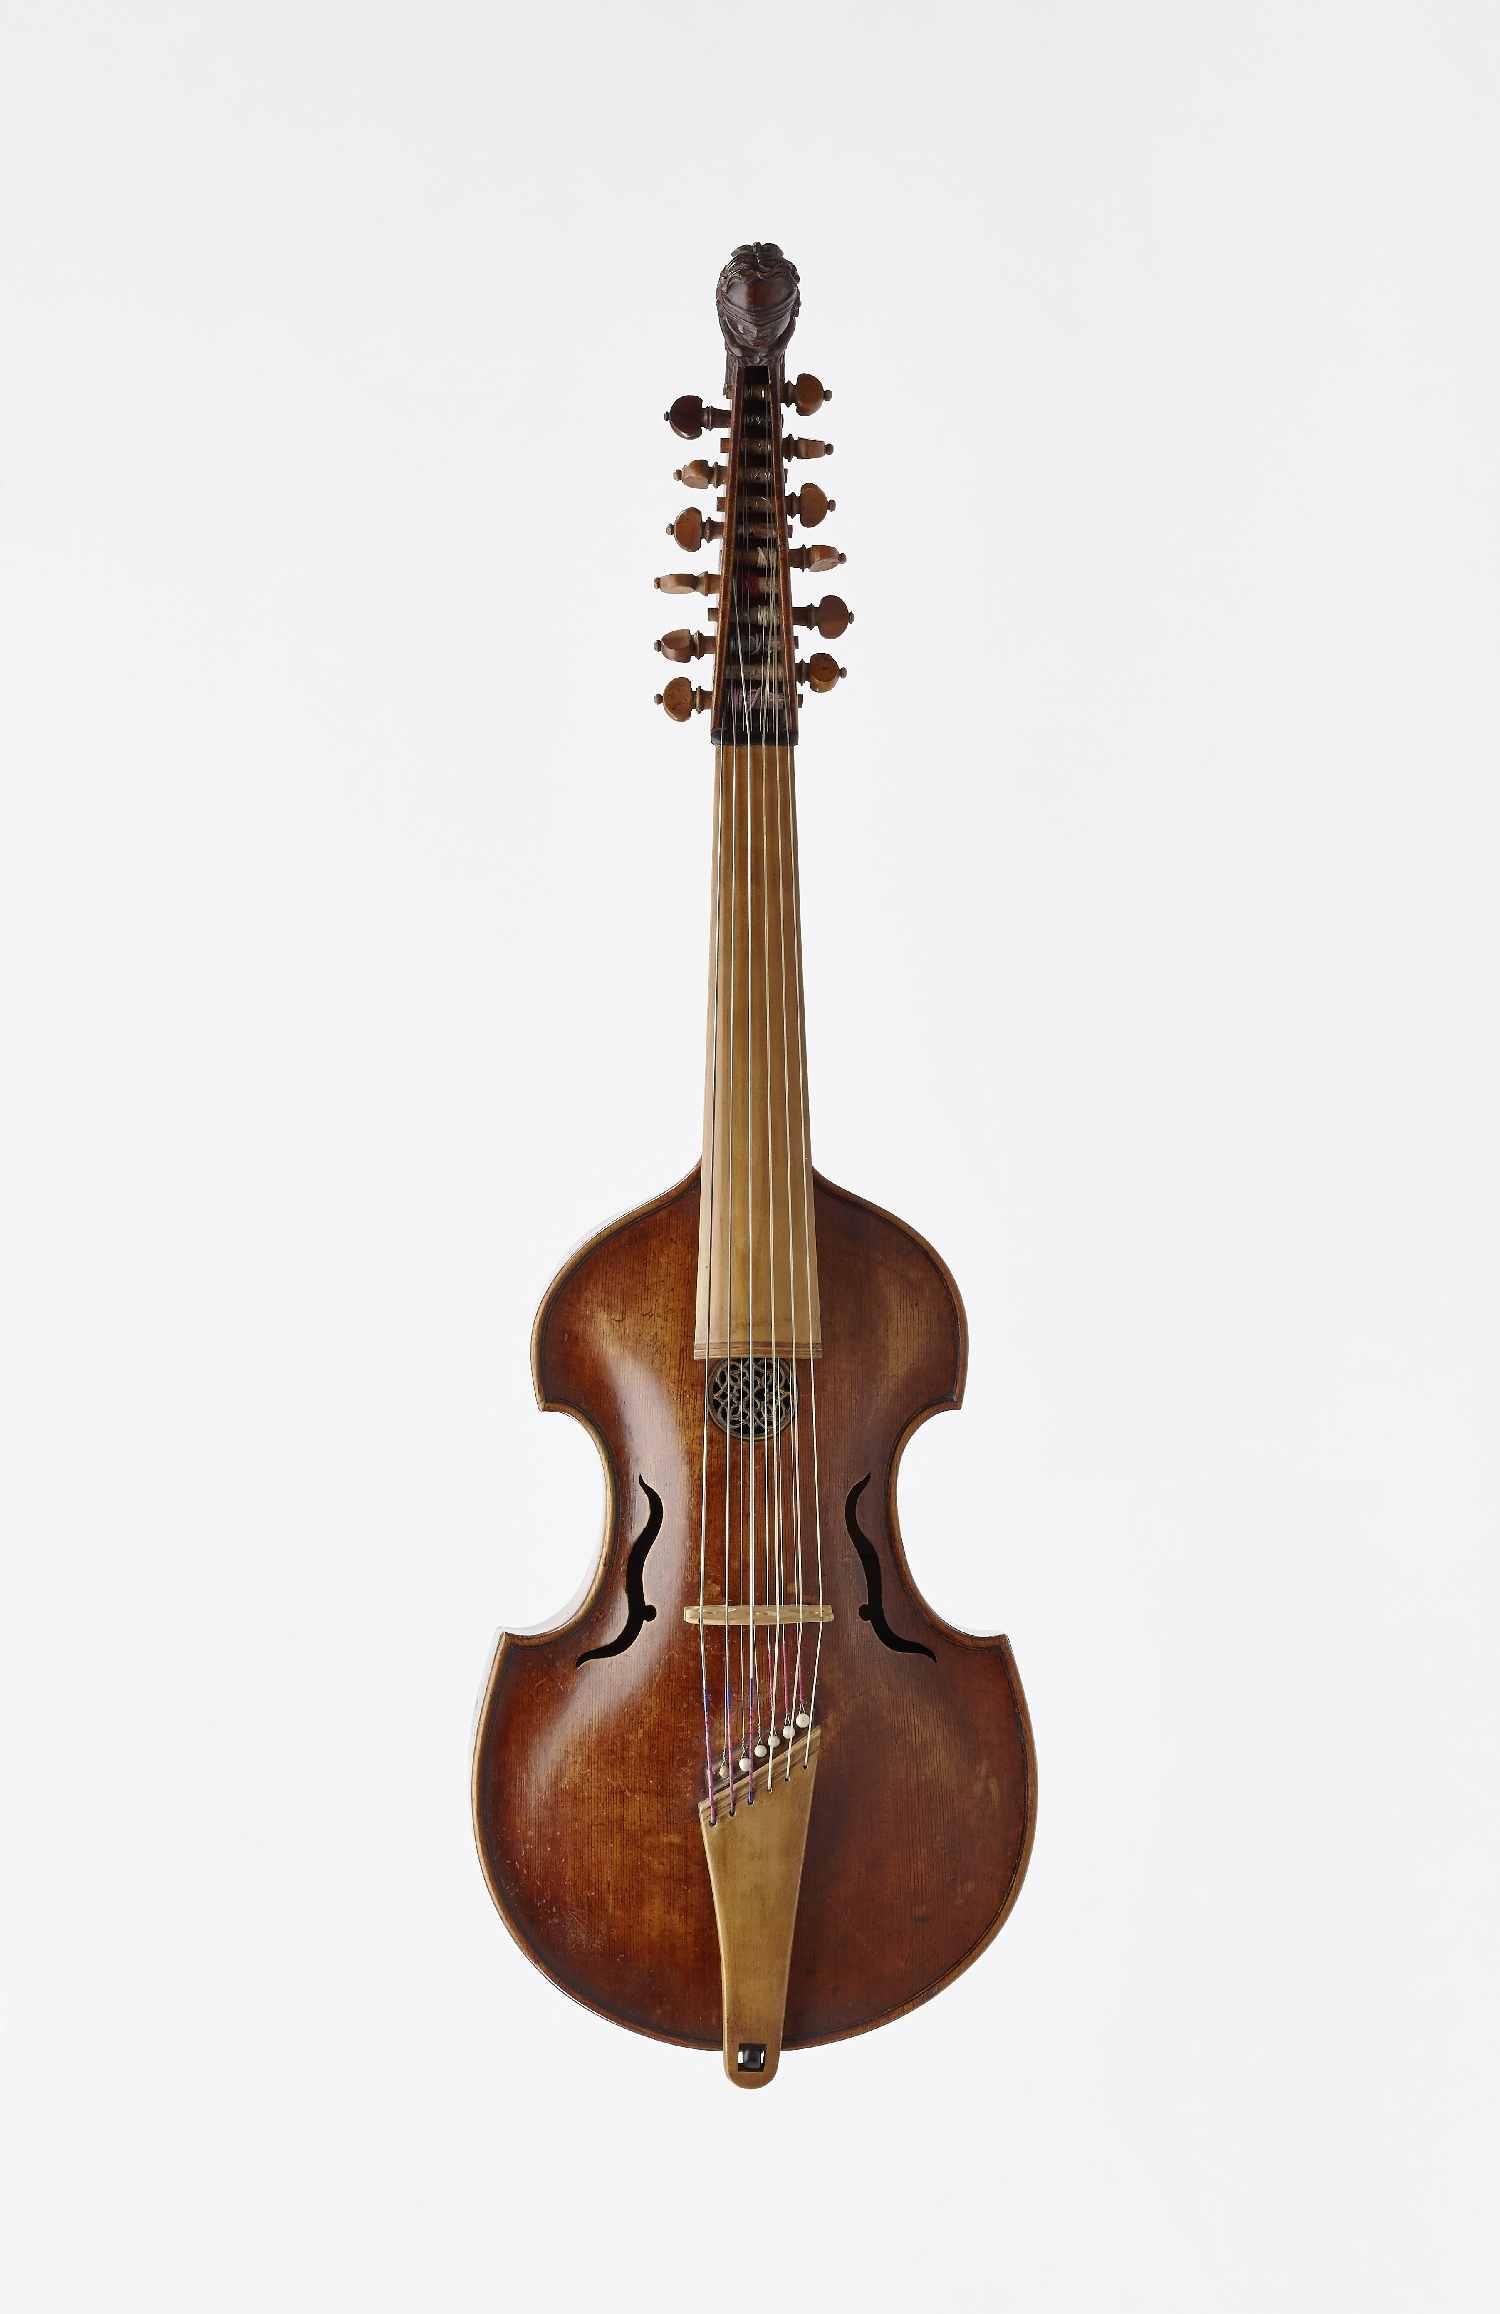 Viola d'amore, Johannes Schorn, Salzburg, 1701, wood (maple, fir), metal, inv. no. MI 1016